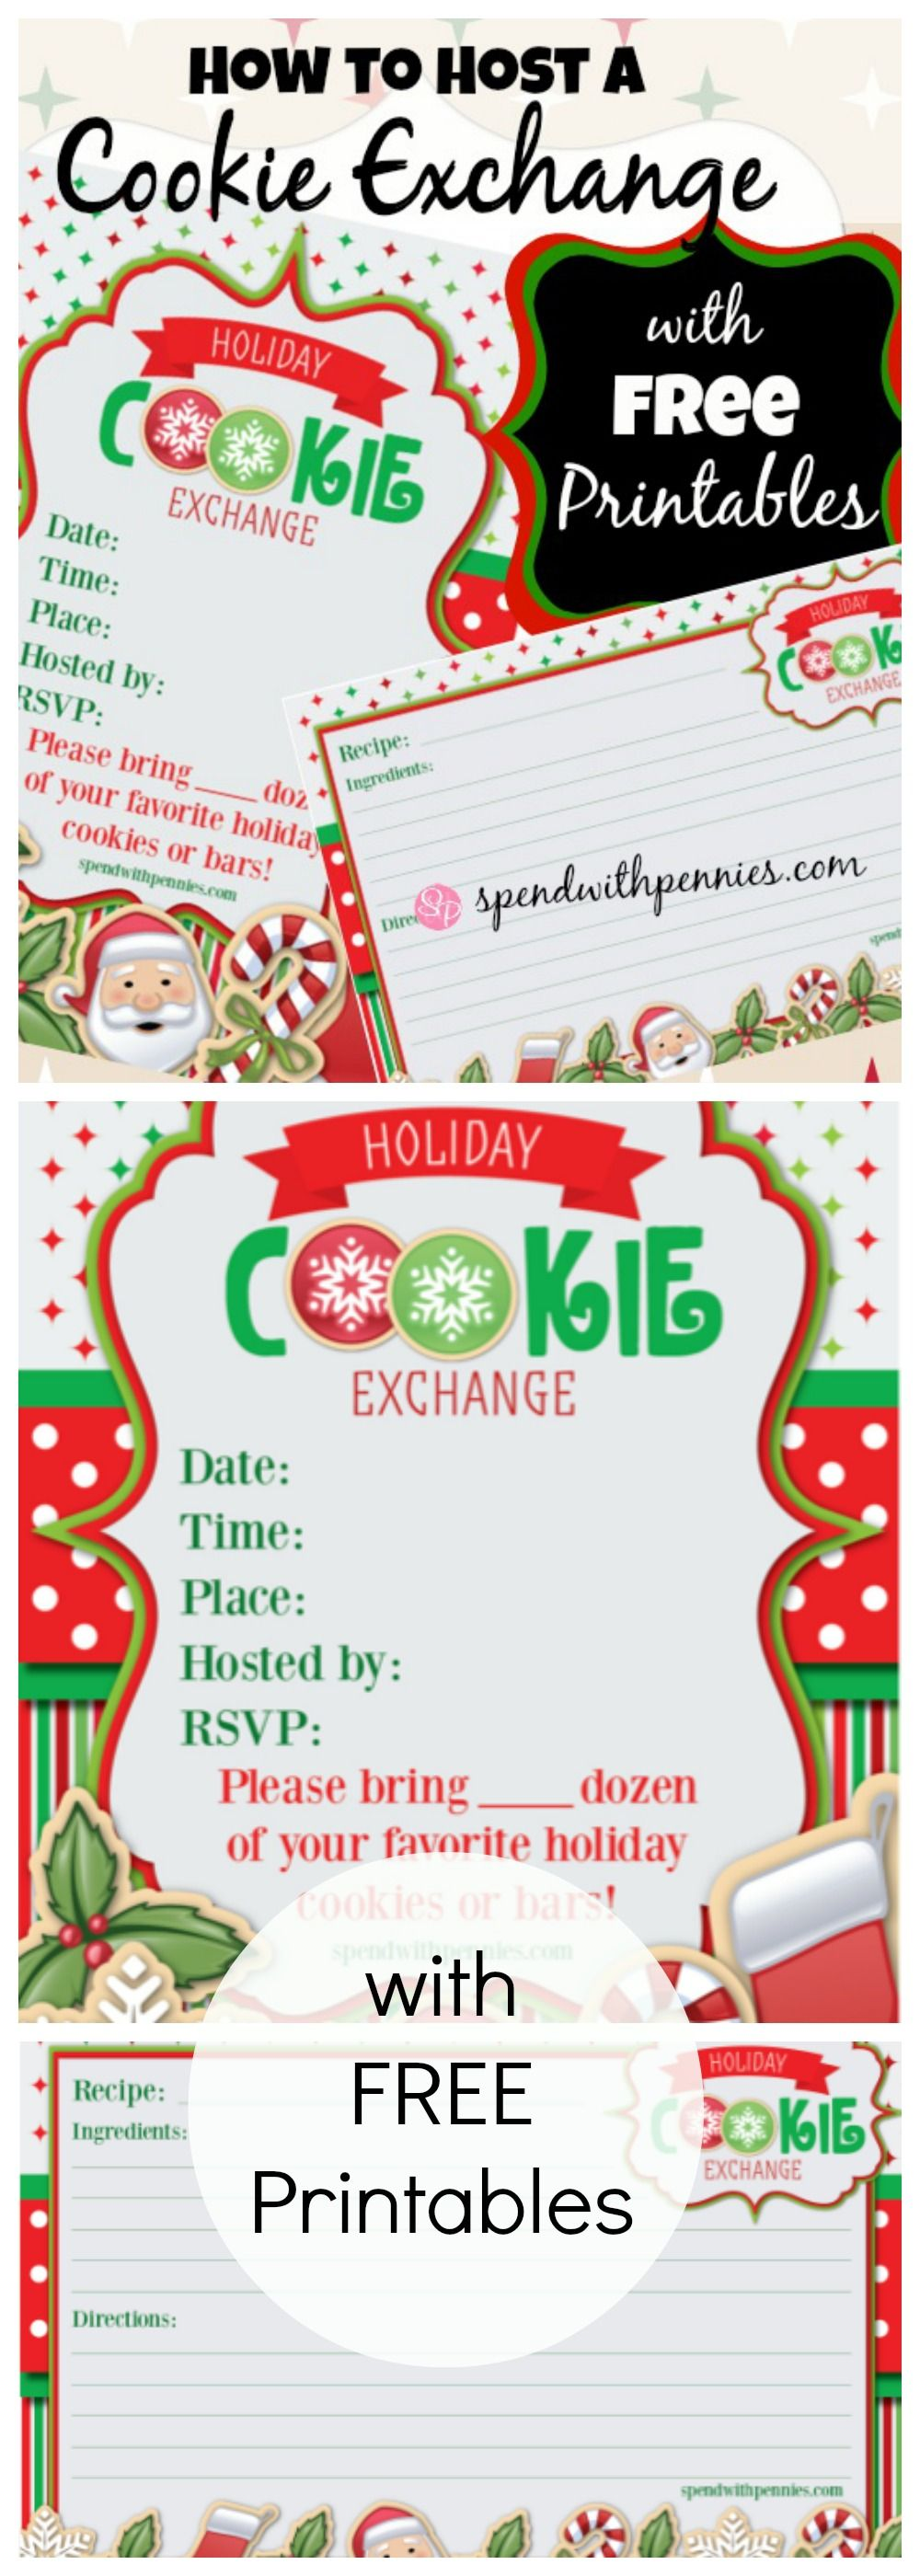 How to Host a Cookie Exchange! With tips and FREE printables! <3 ...